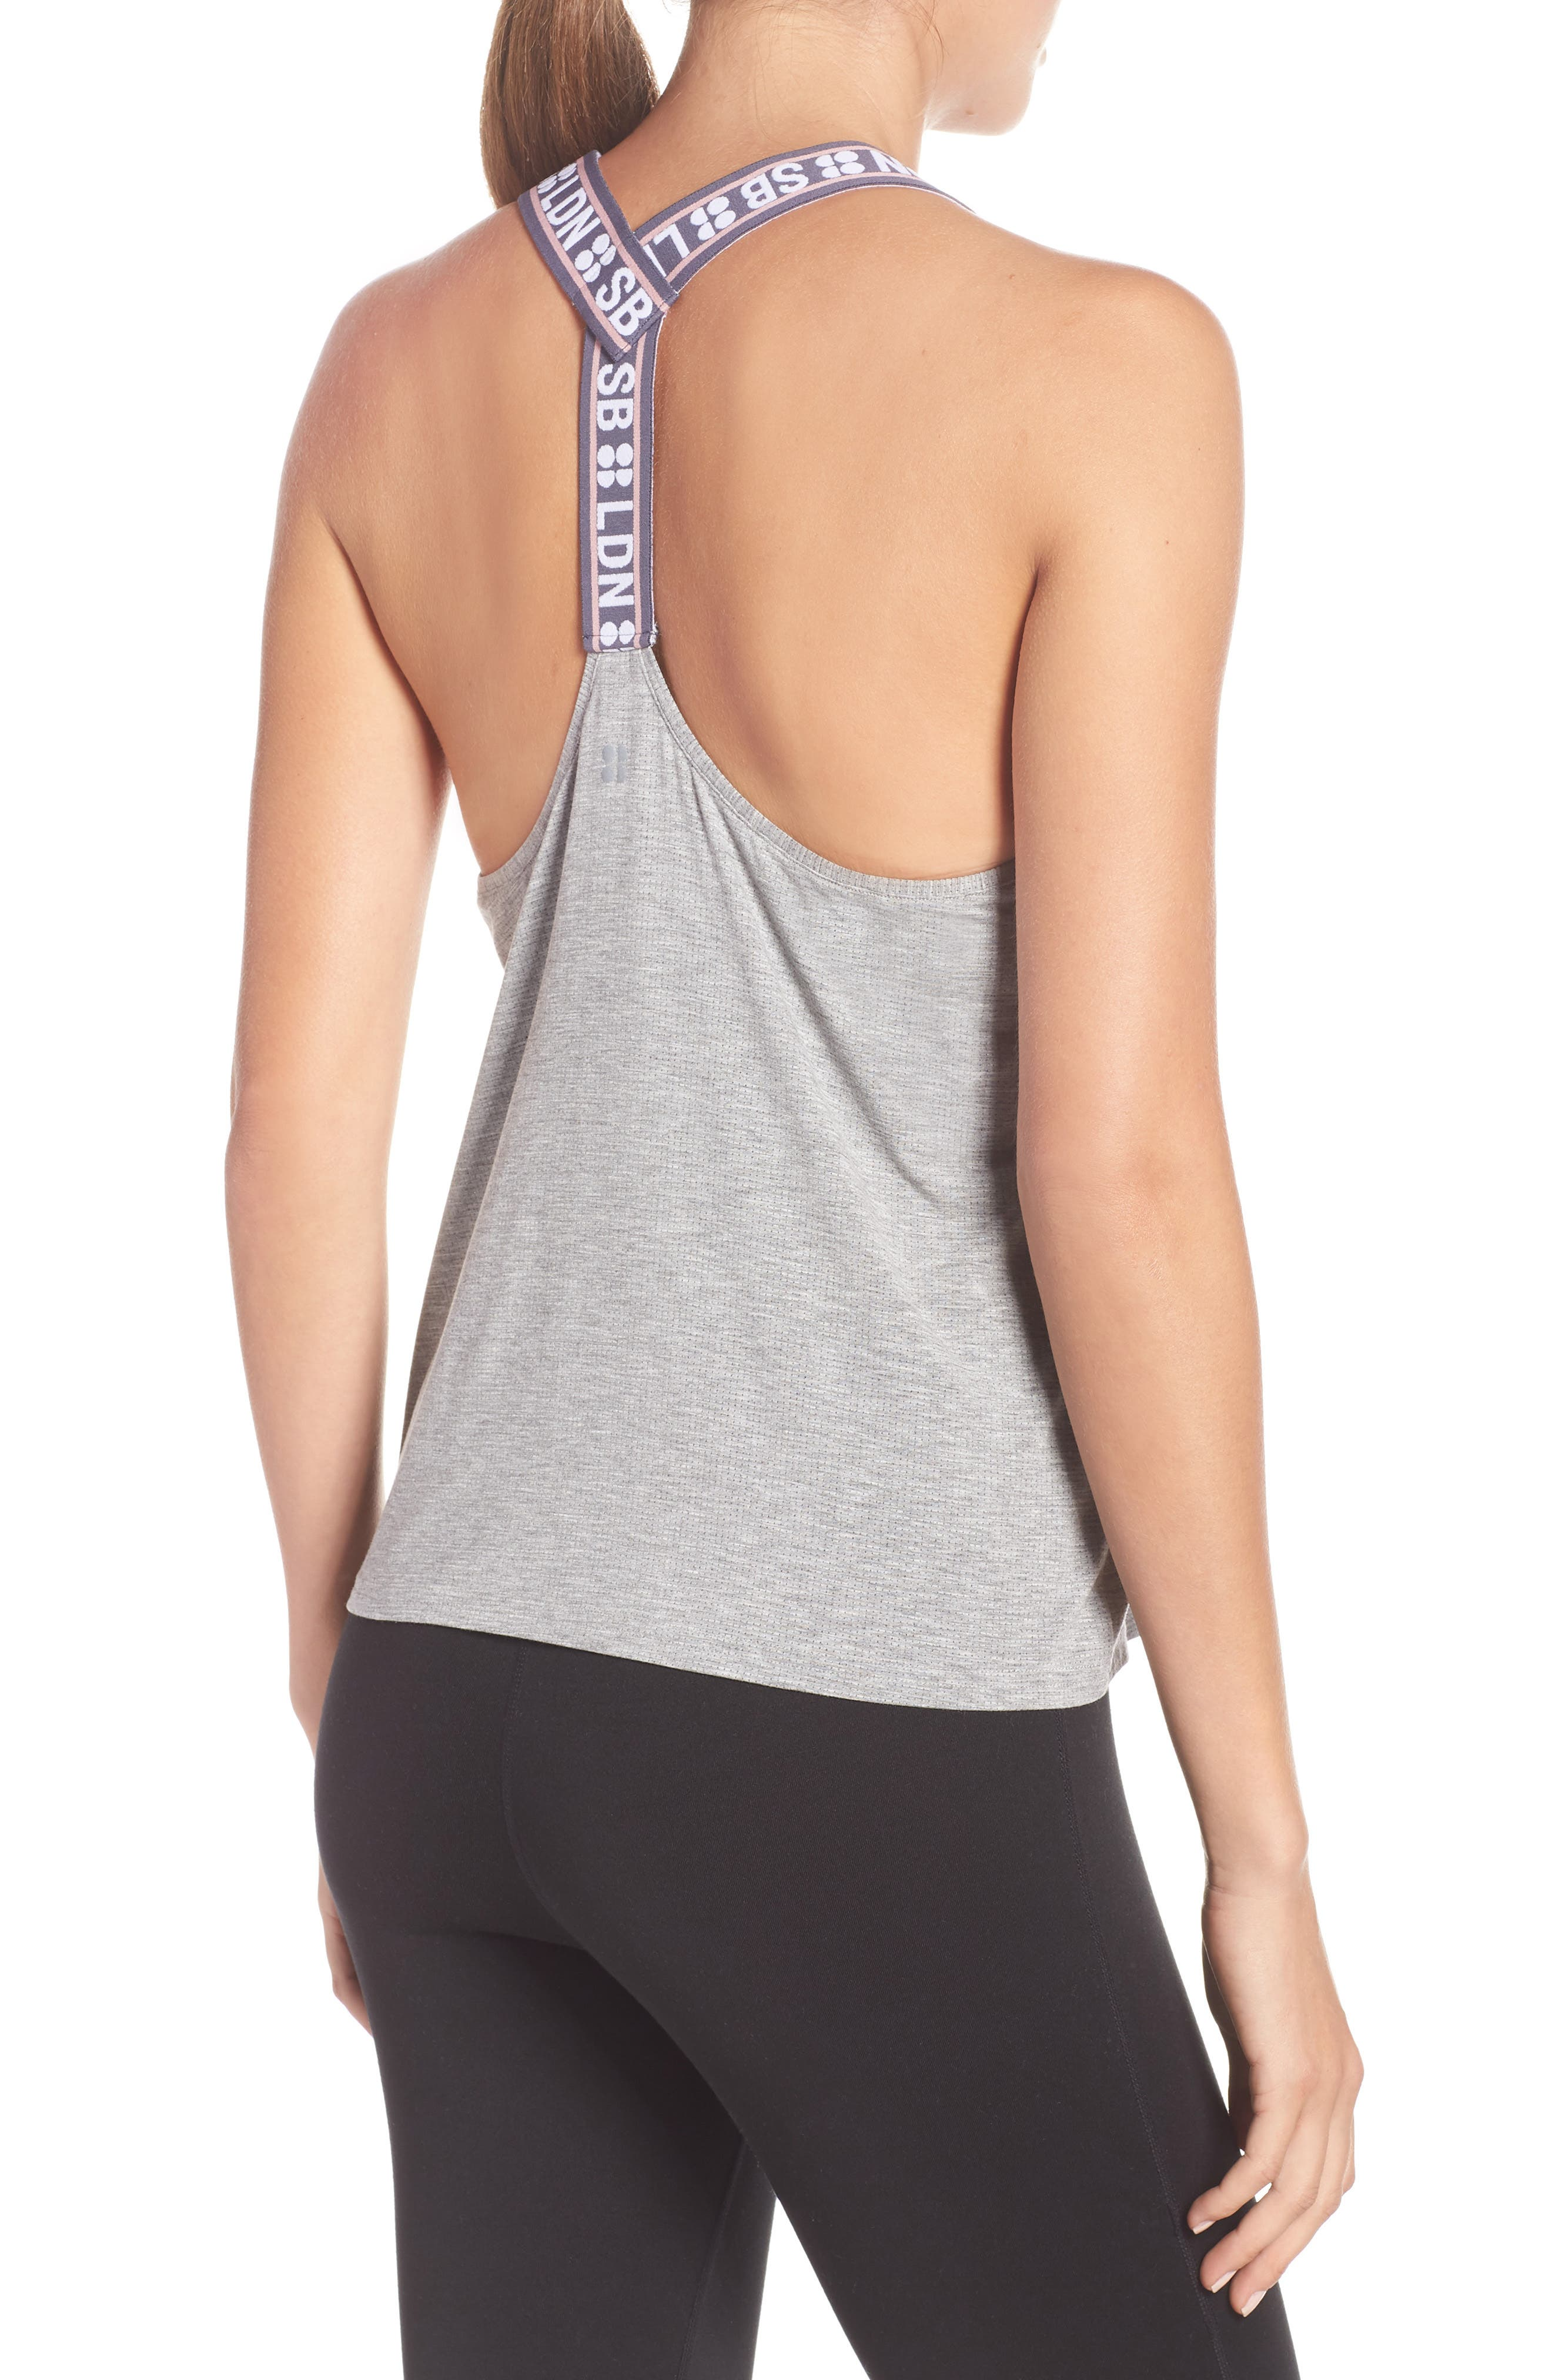 Workout Tank Top,                             Alternate thumbnail 2, color,                             SILVER GREY MARL